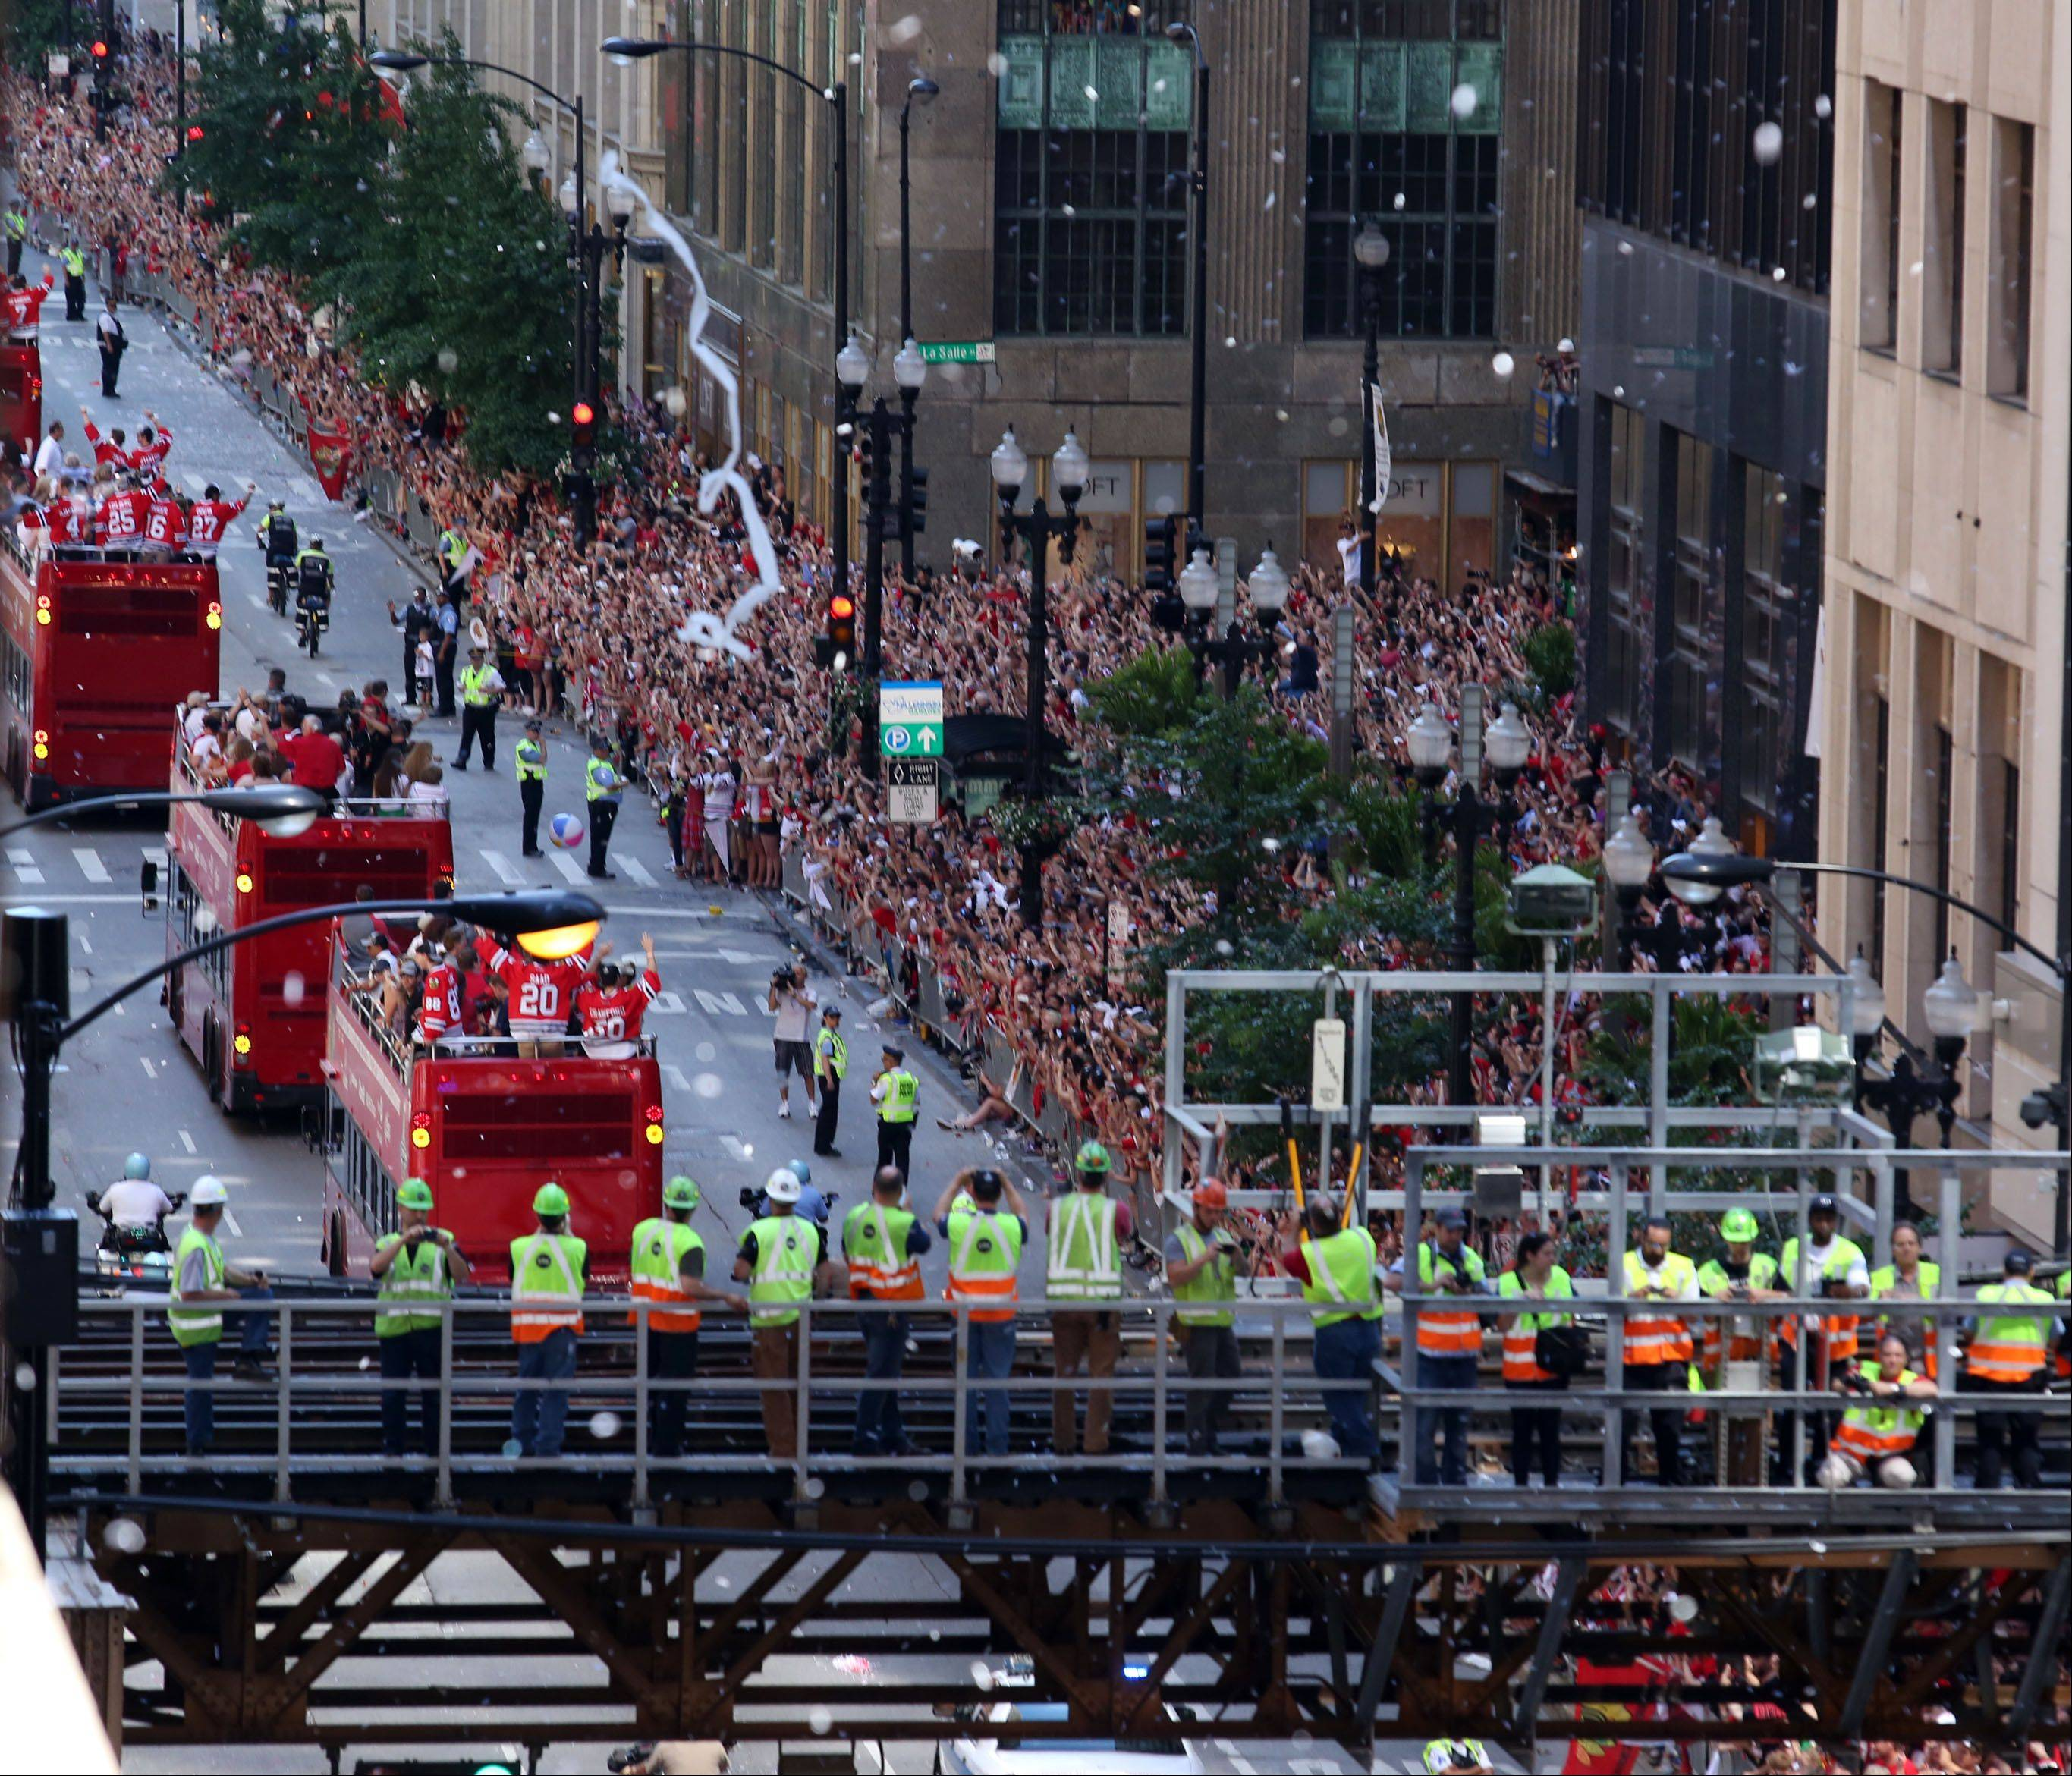 CTA workers get a high angle view from transit tracks of the Blackhawks parade traveling east on Washington Street in Chicago on Friday.